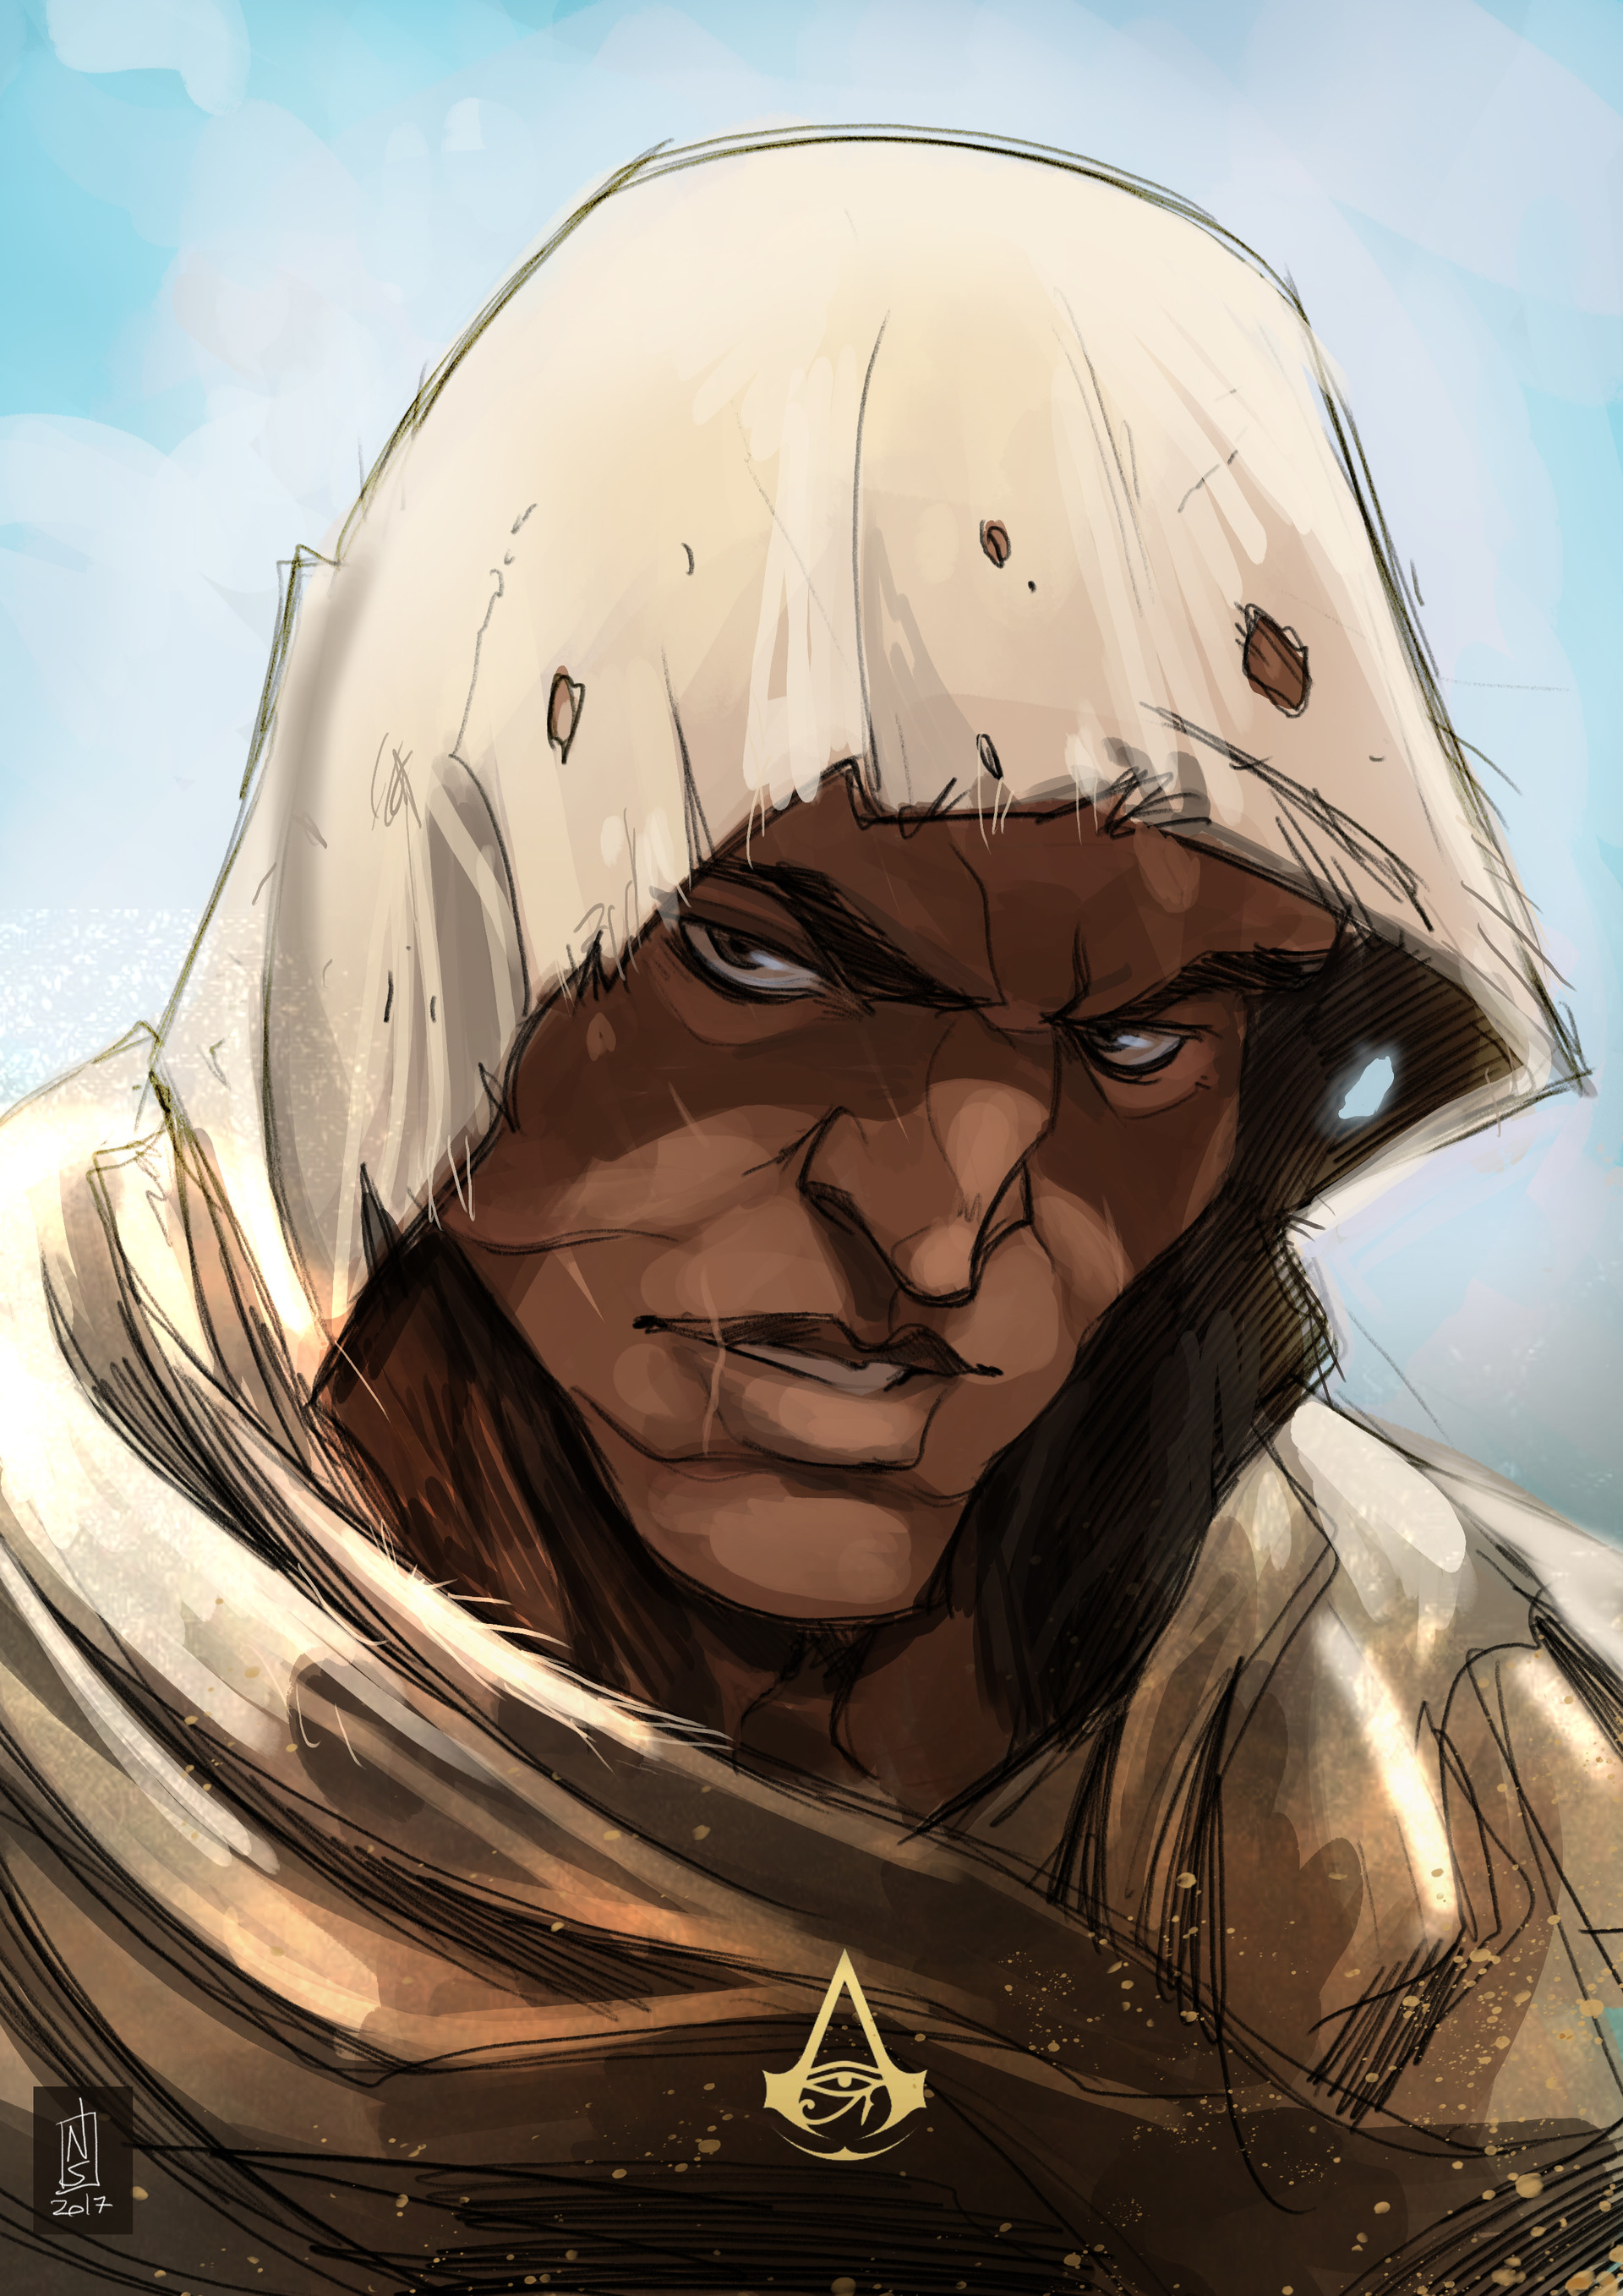 Artstation Bayek Assassin S Creed Origins Sketch Nicolo Santoro